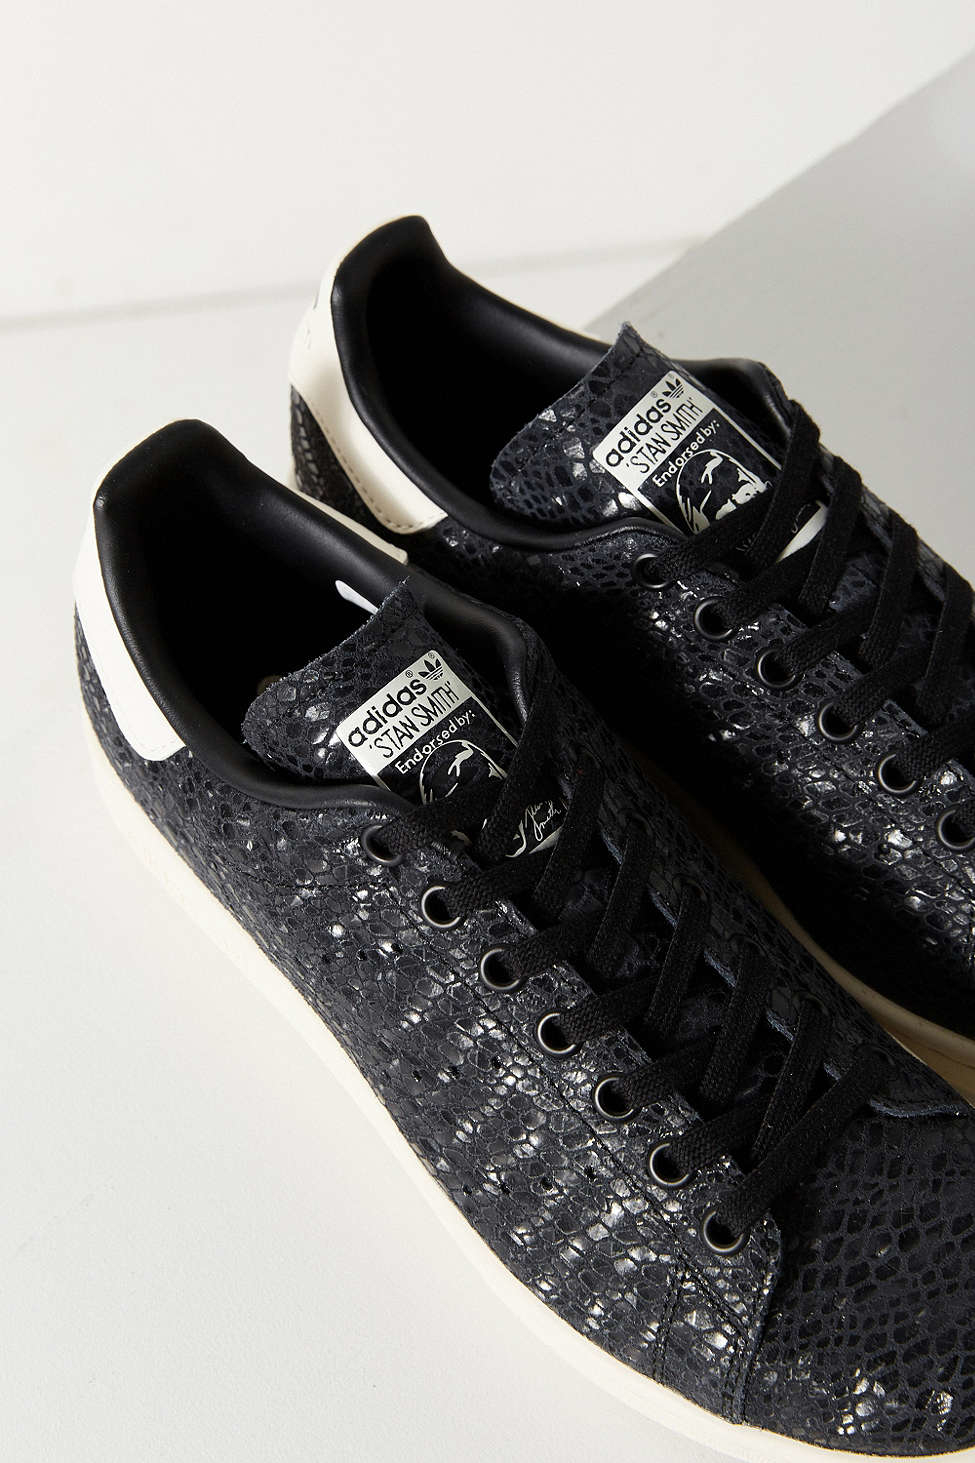 Iphone Cases Lyst - Adidas Foil Snake Stan Smith Sneaker In Black